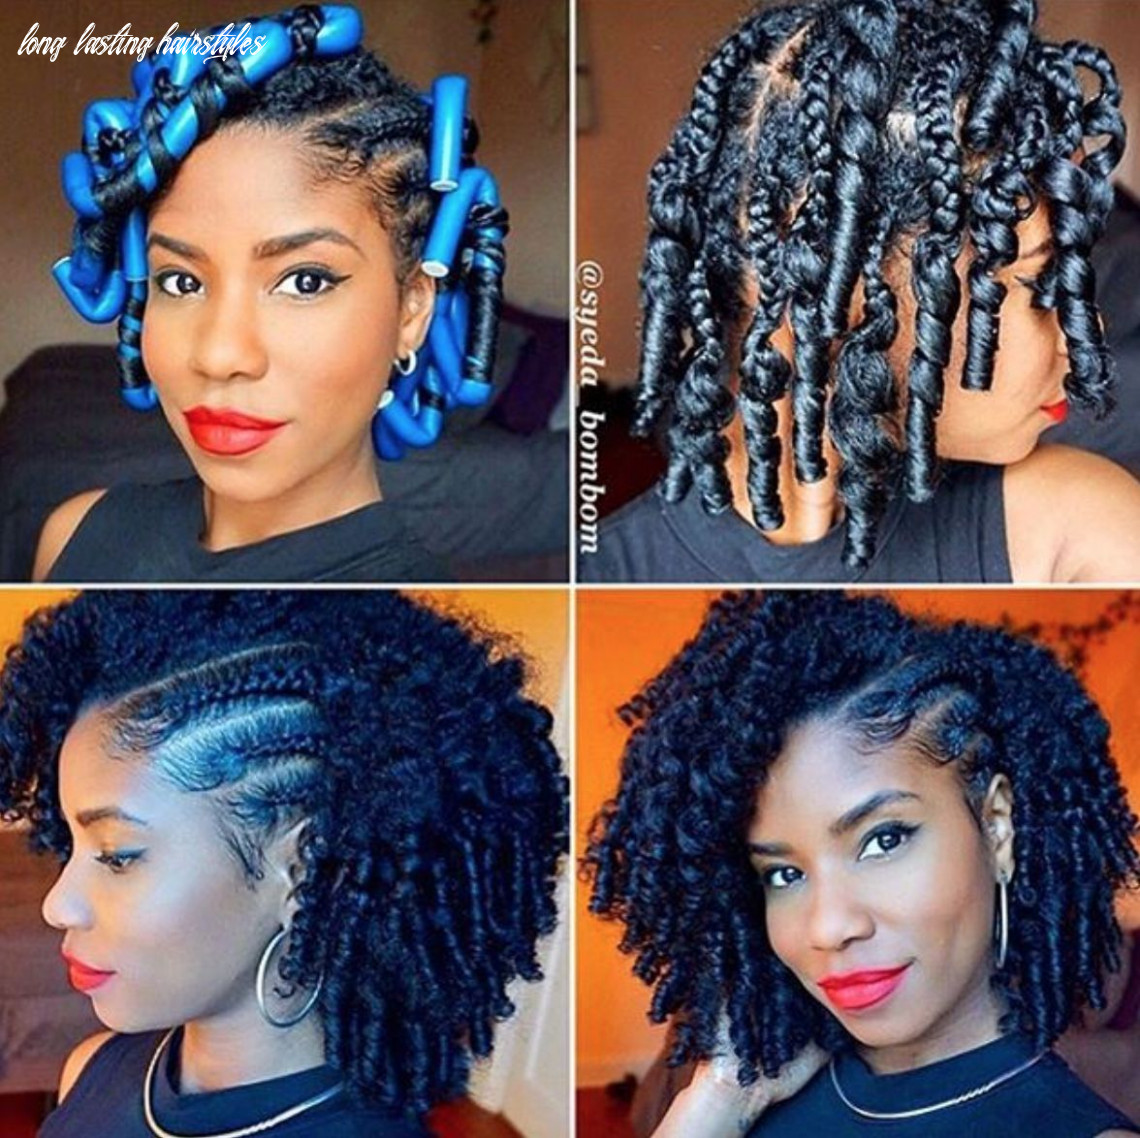 12 stylish cornrow hairstyles   braids with curls, natural hair